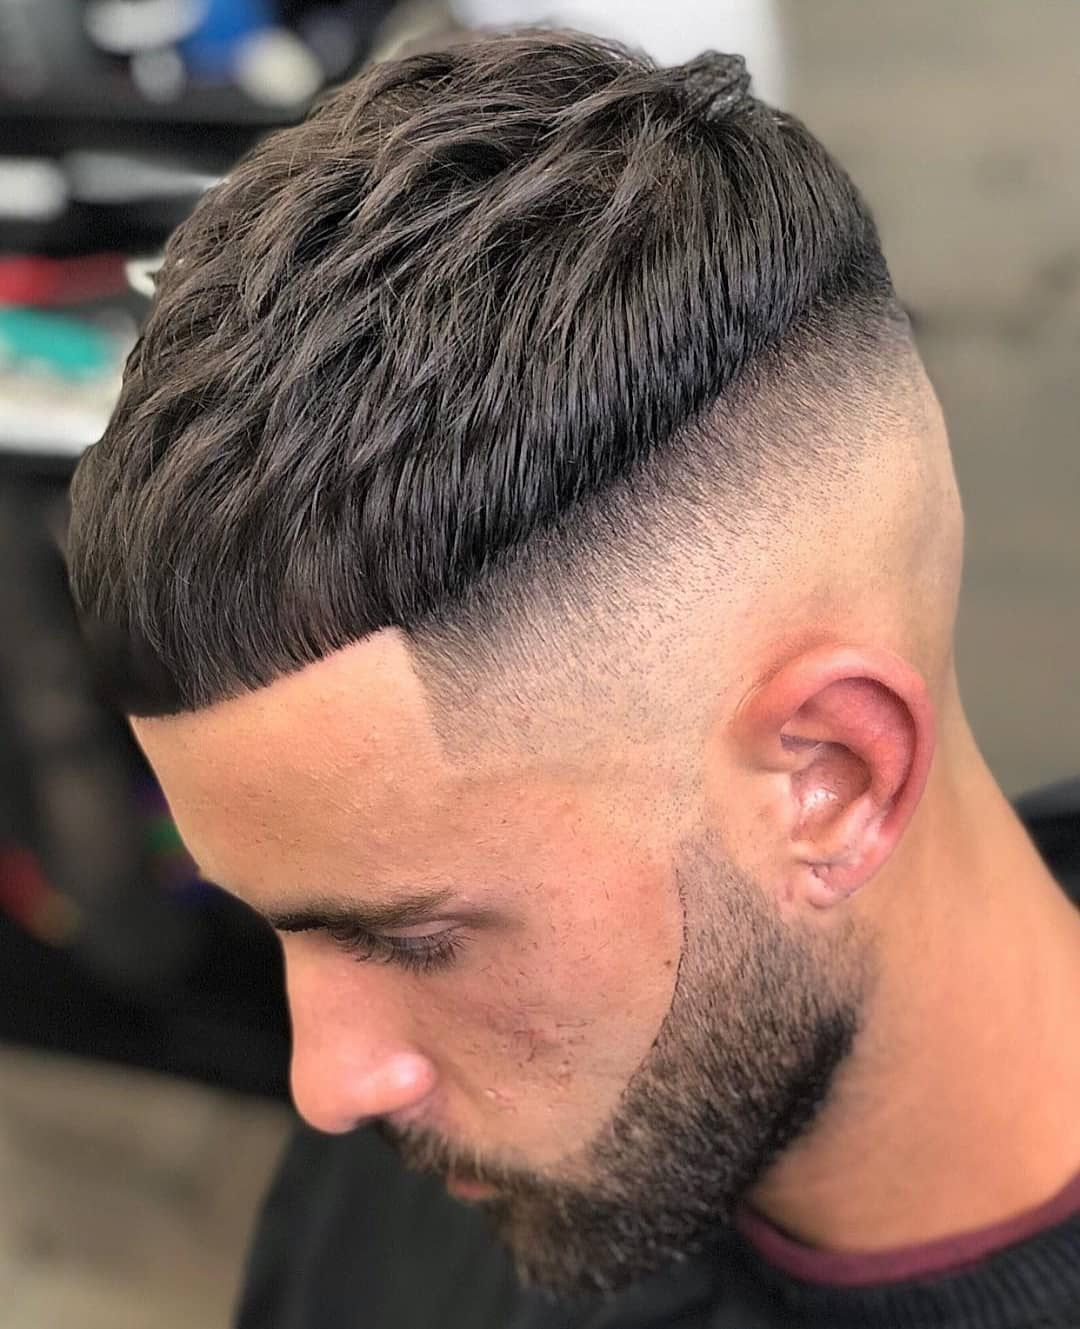 16 Best French Crop Haircut How To Get Styling Guide Crop Haircut Mens Cropped Hair Mens Crop Haircut